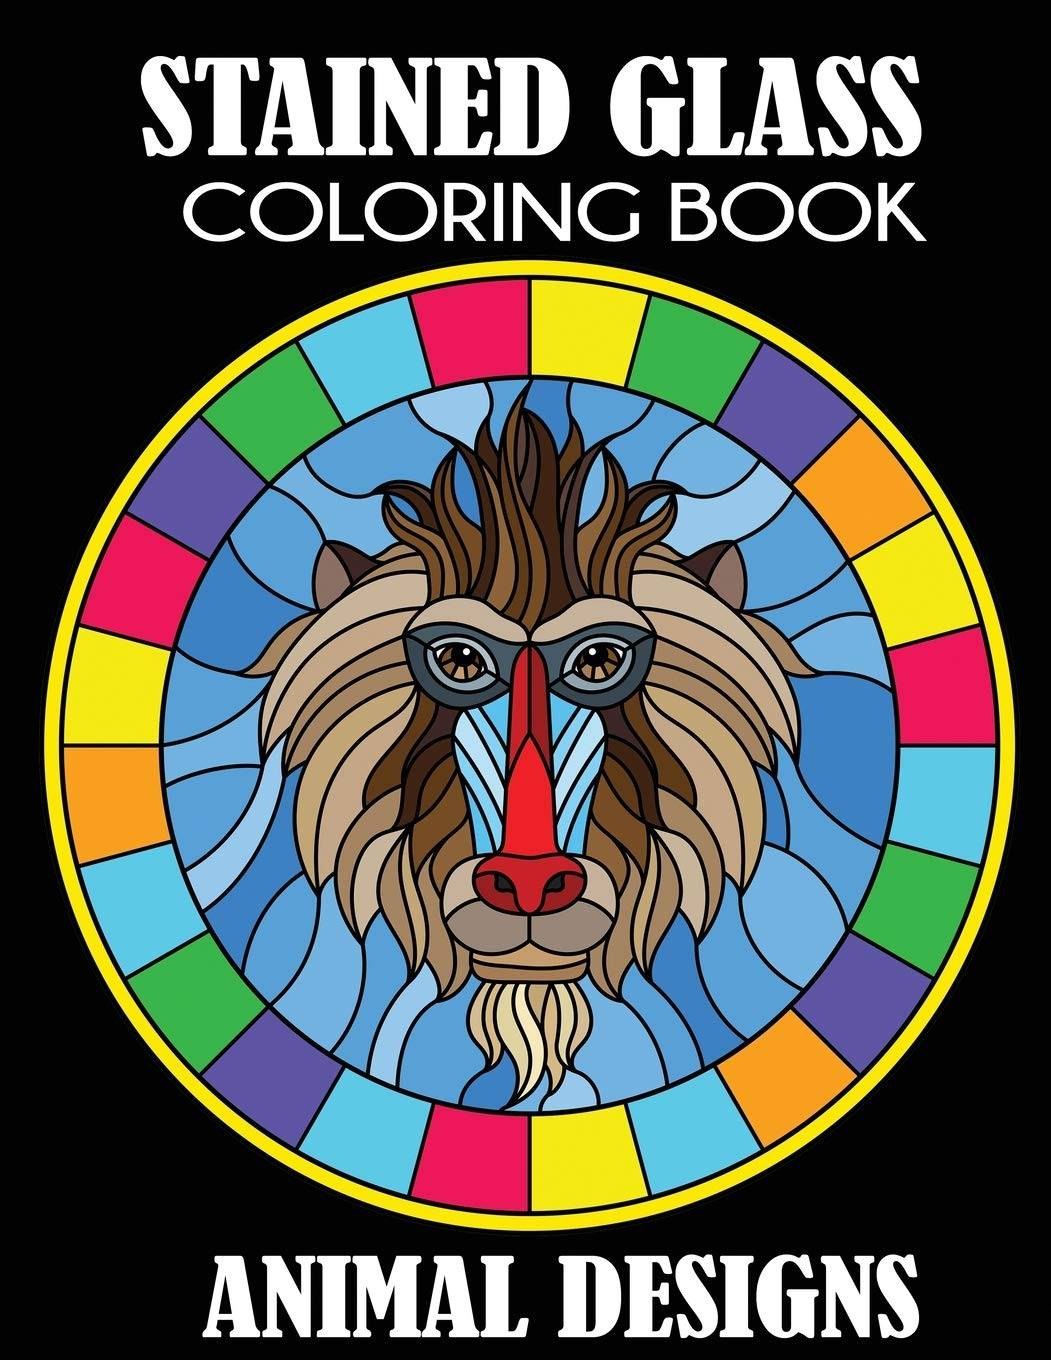 Stained Glass Coloring Book Designs product image